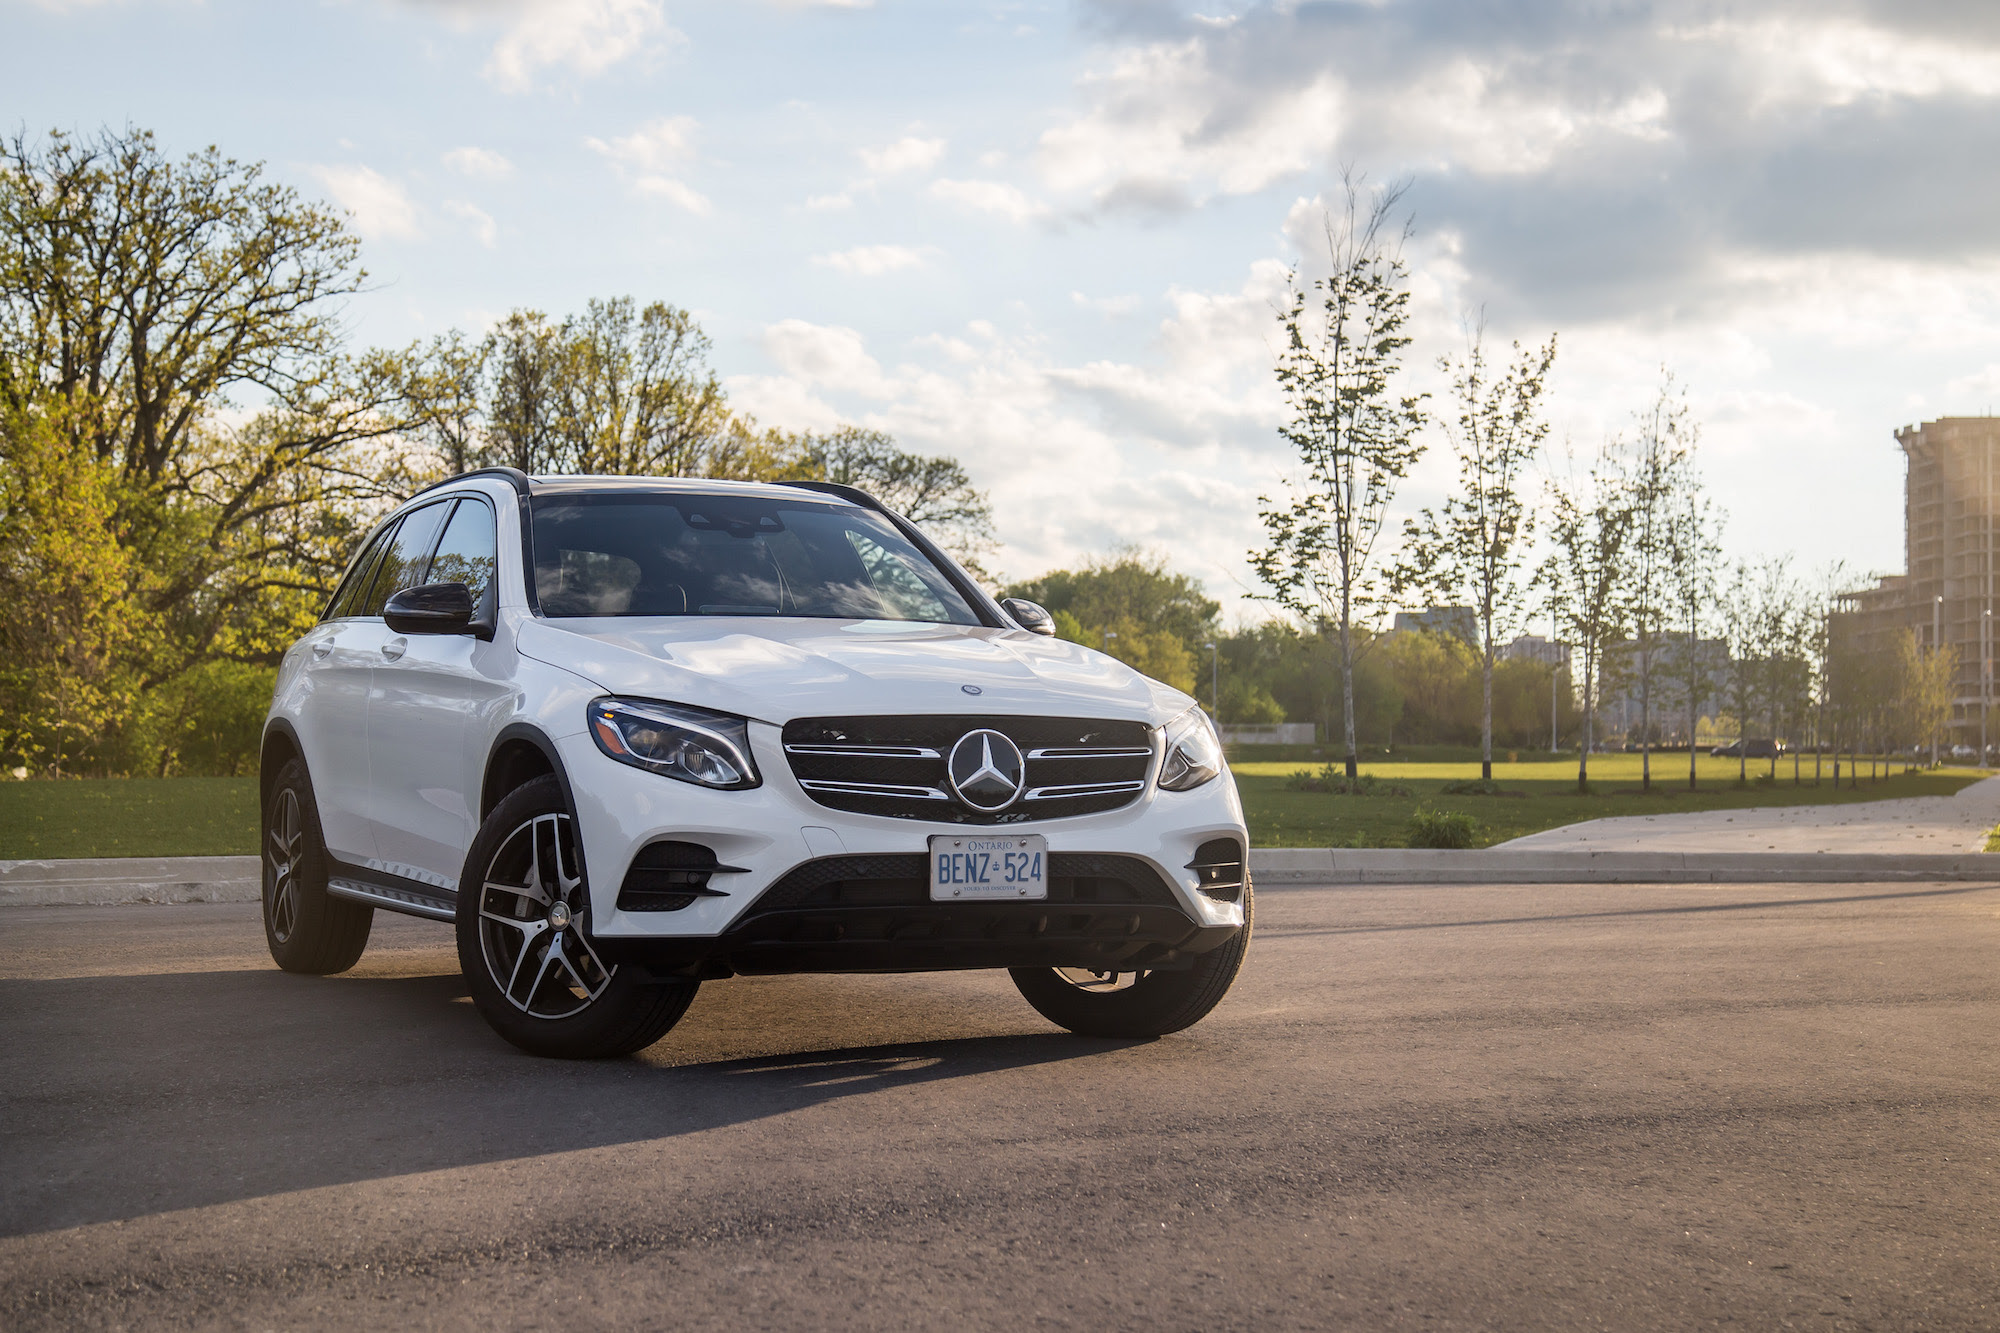 Review: 2017 Mercedes-Benz GLC 300 4MATIC | Canadian Auto ...